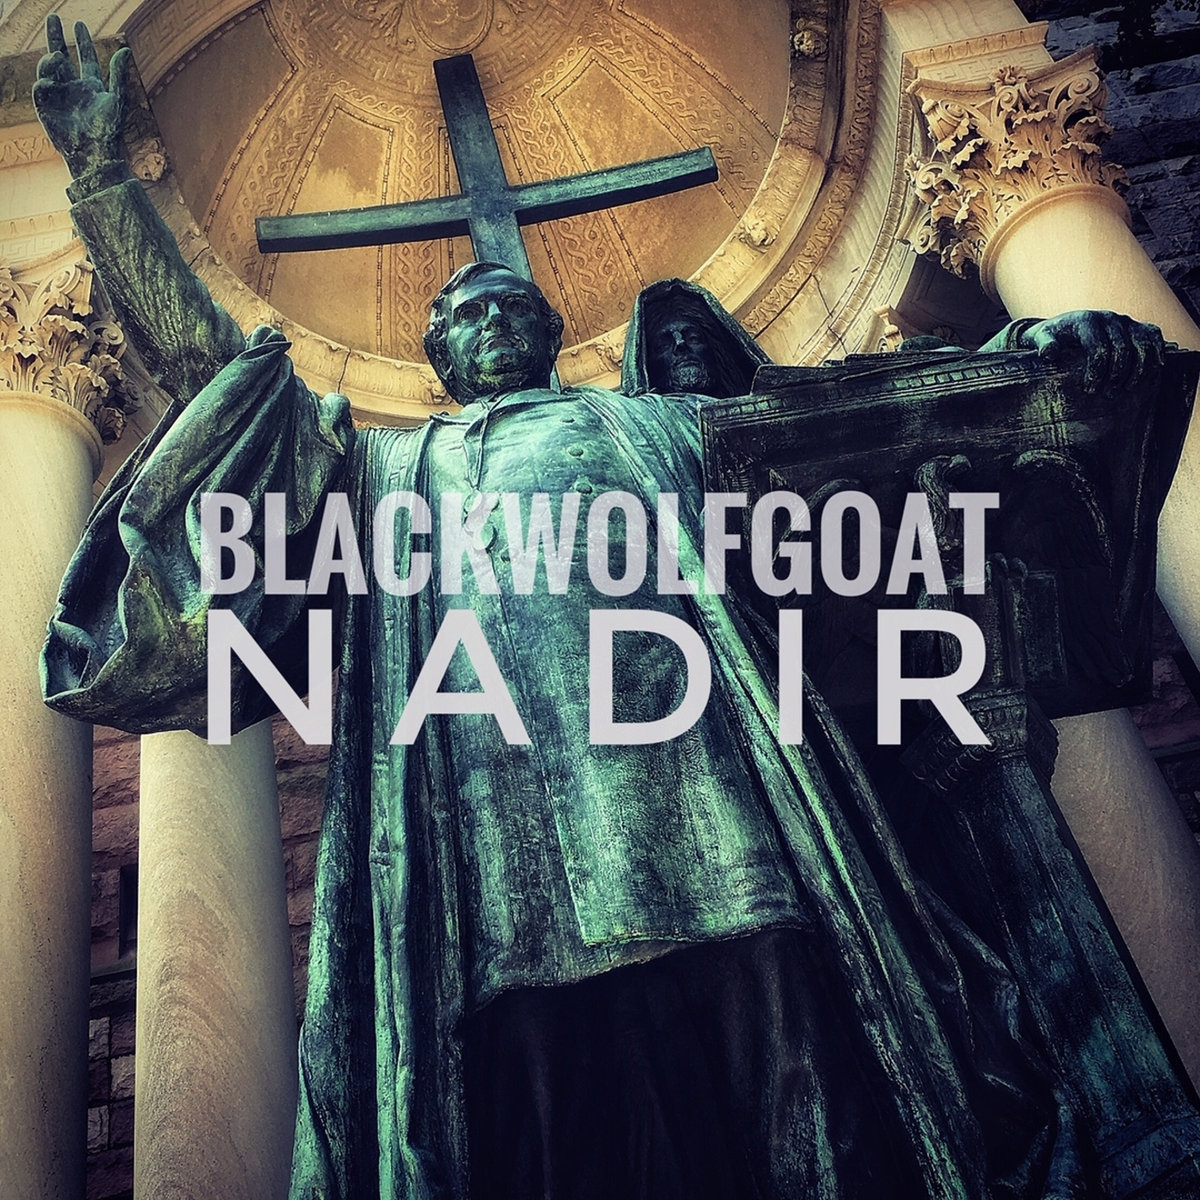 blackwolfgoat nadir